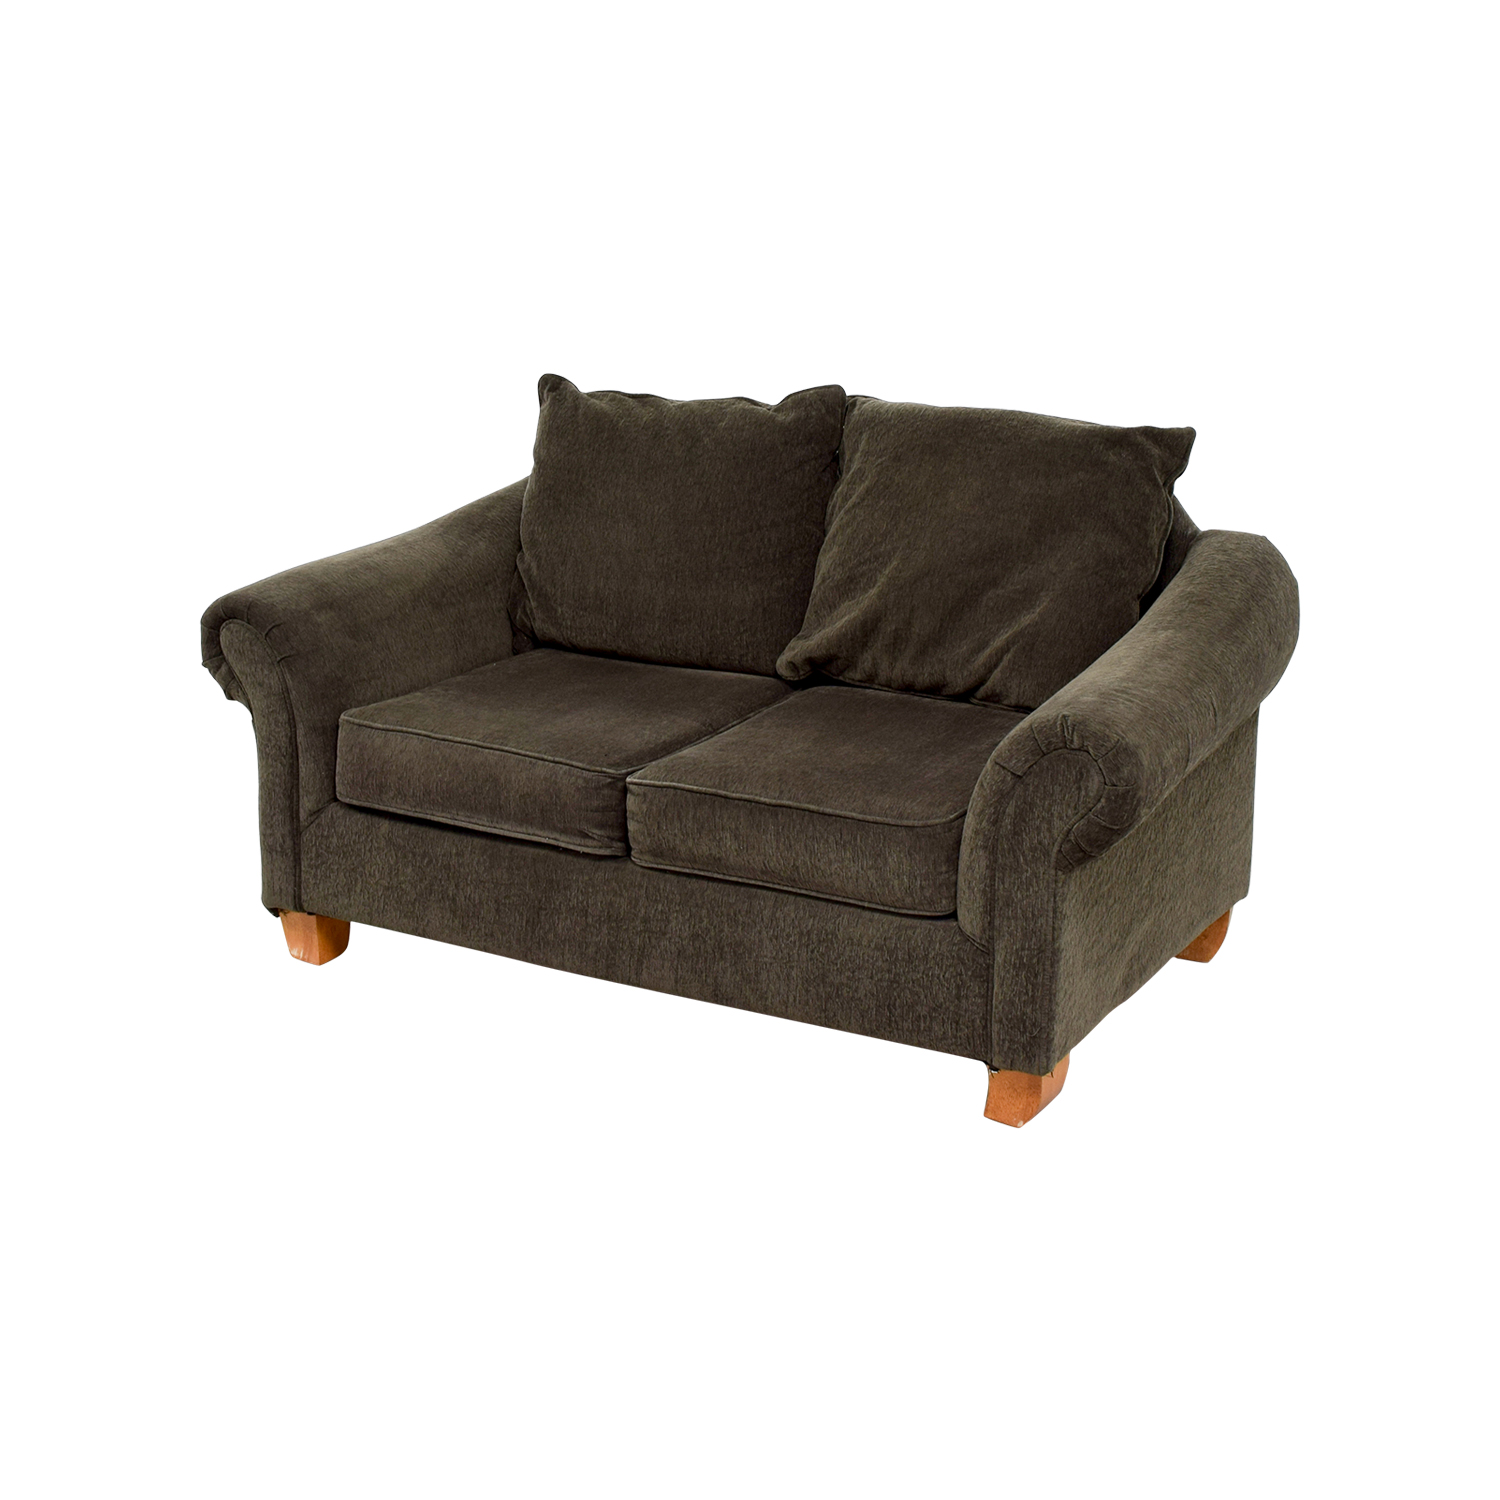 40 Off Star Furniture Star Furniture Brown Curved Arms Loveseat Sofas